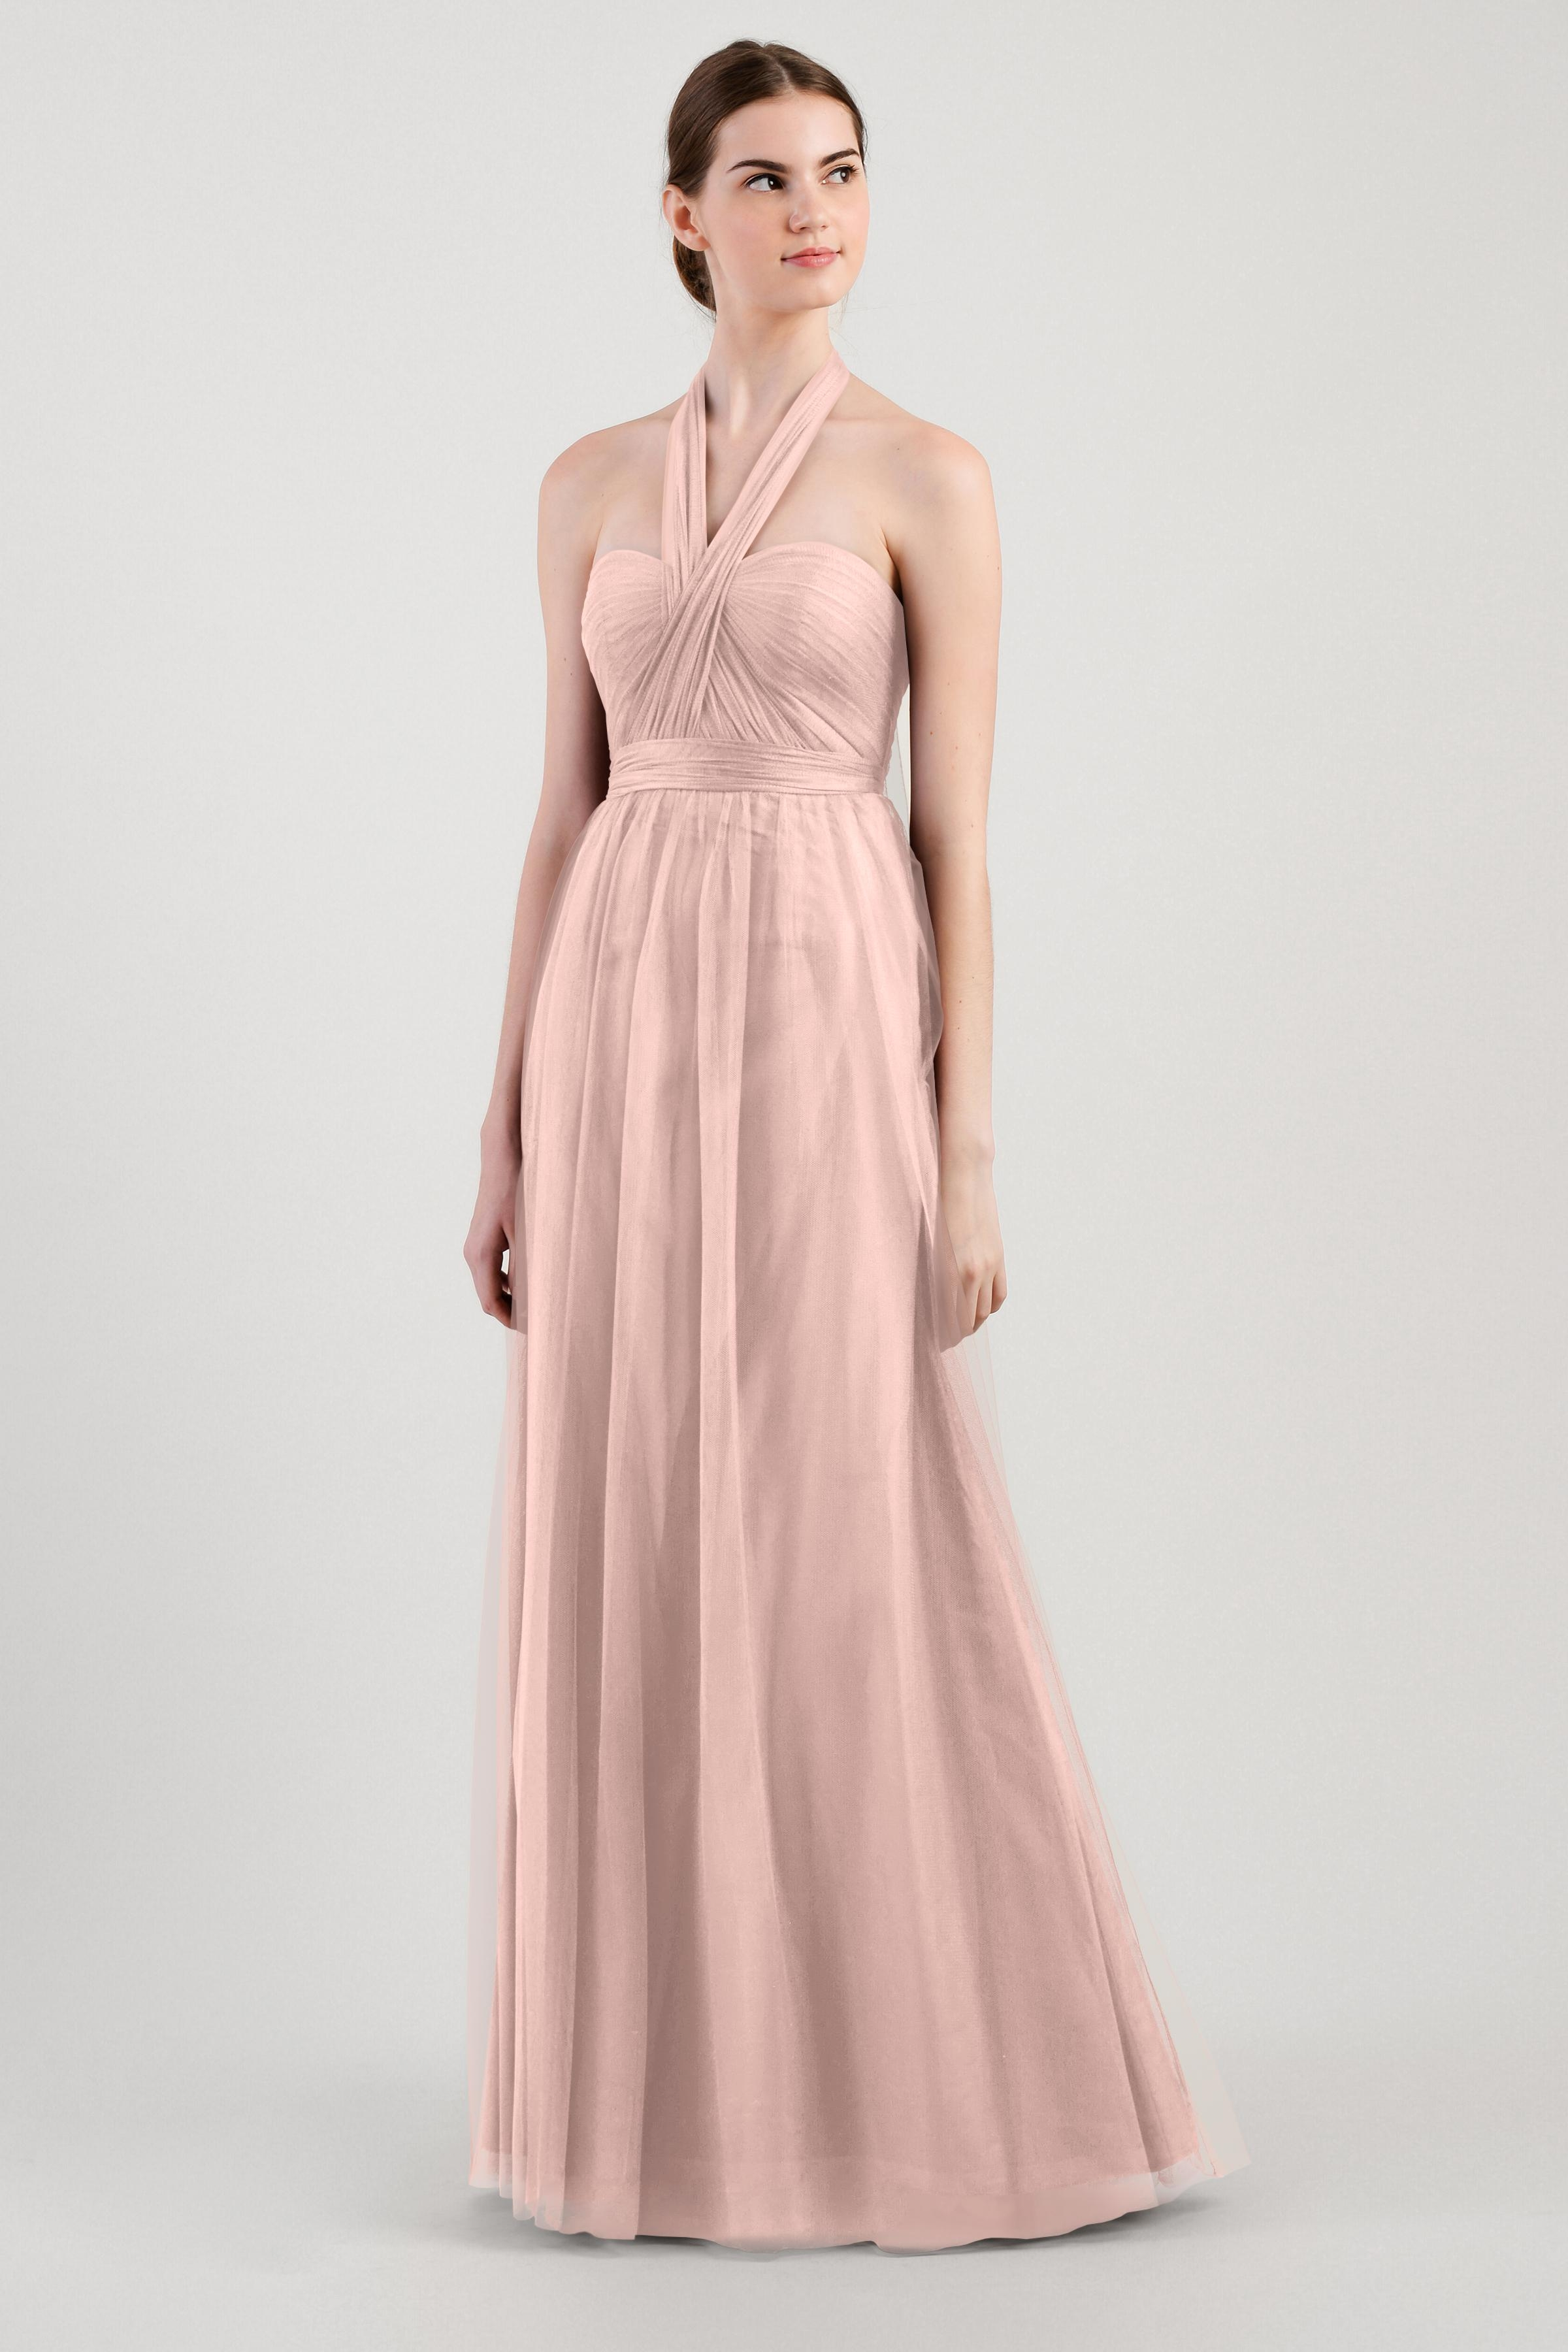 Annabelle Bridesmaids Dress by Jenny Yoo - Whipped Apricot